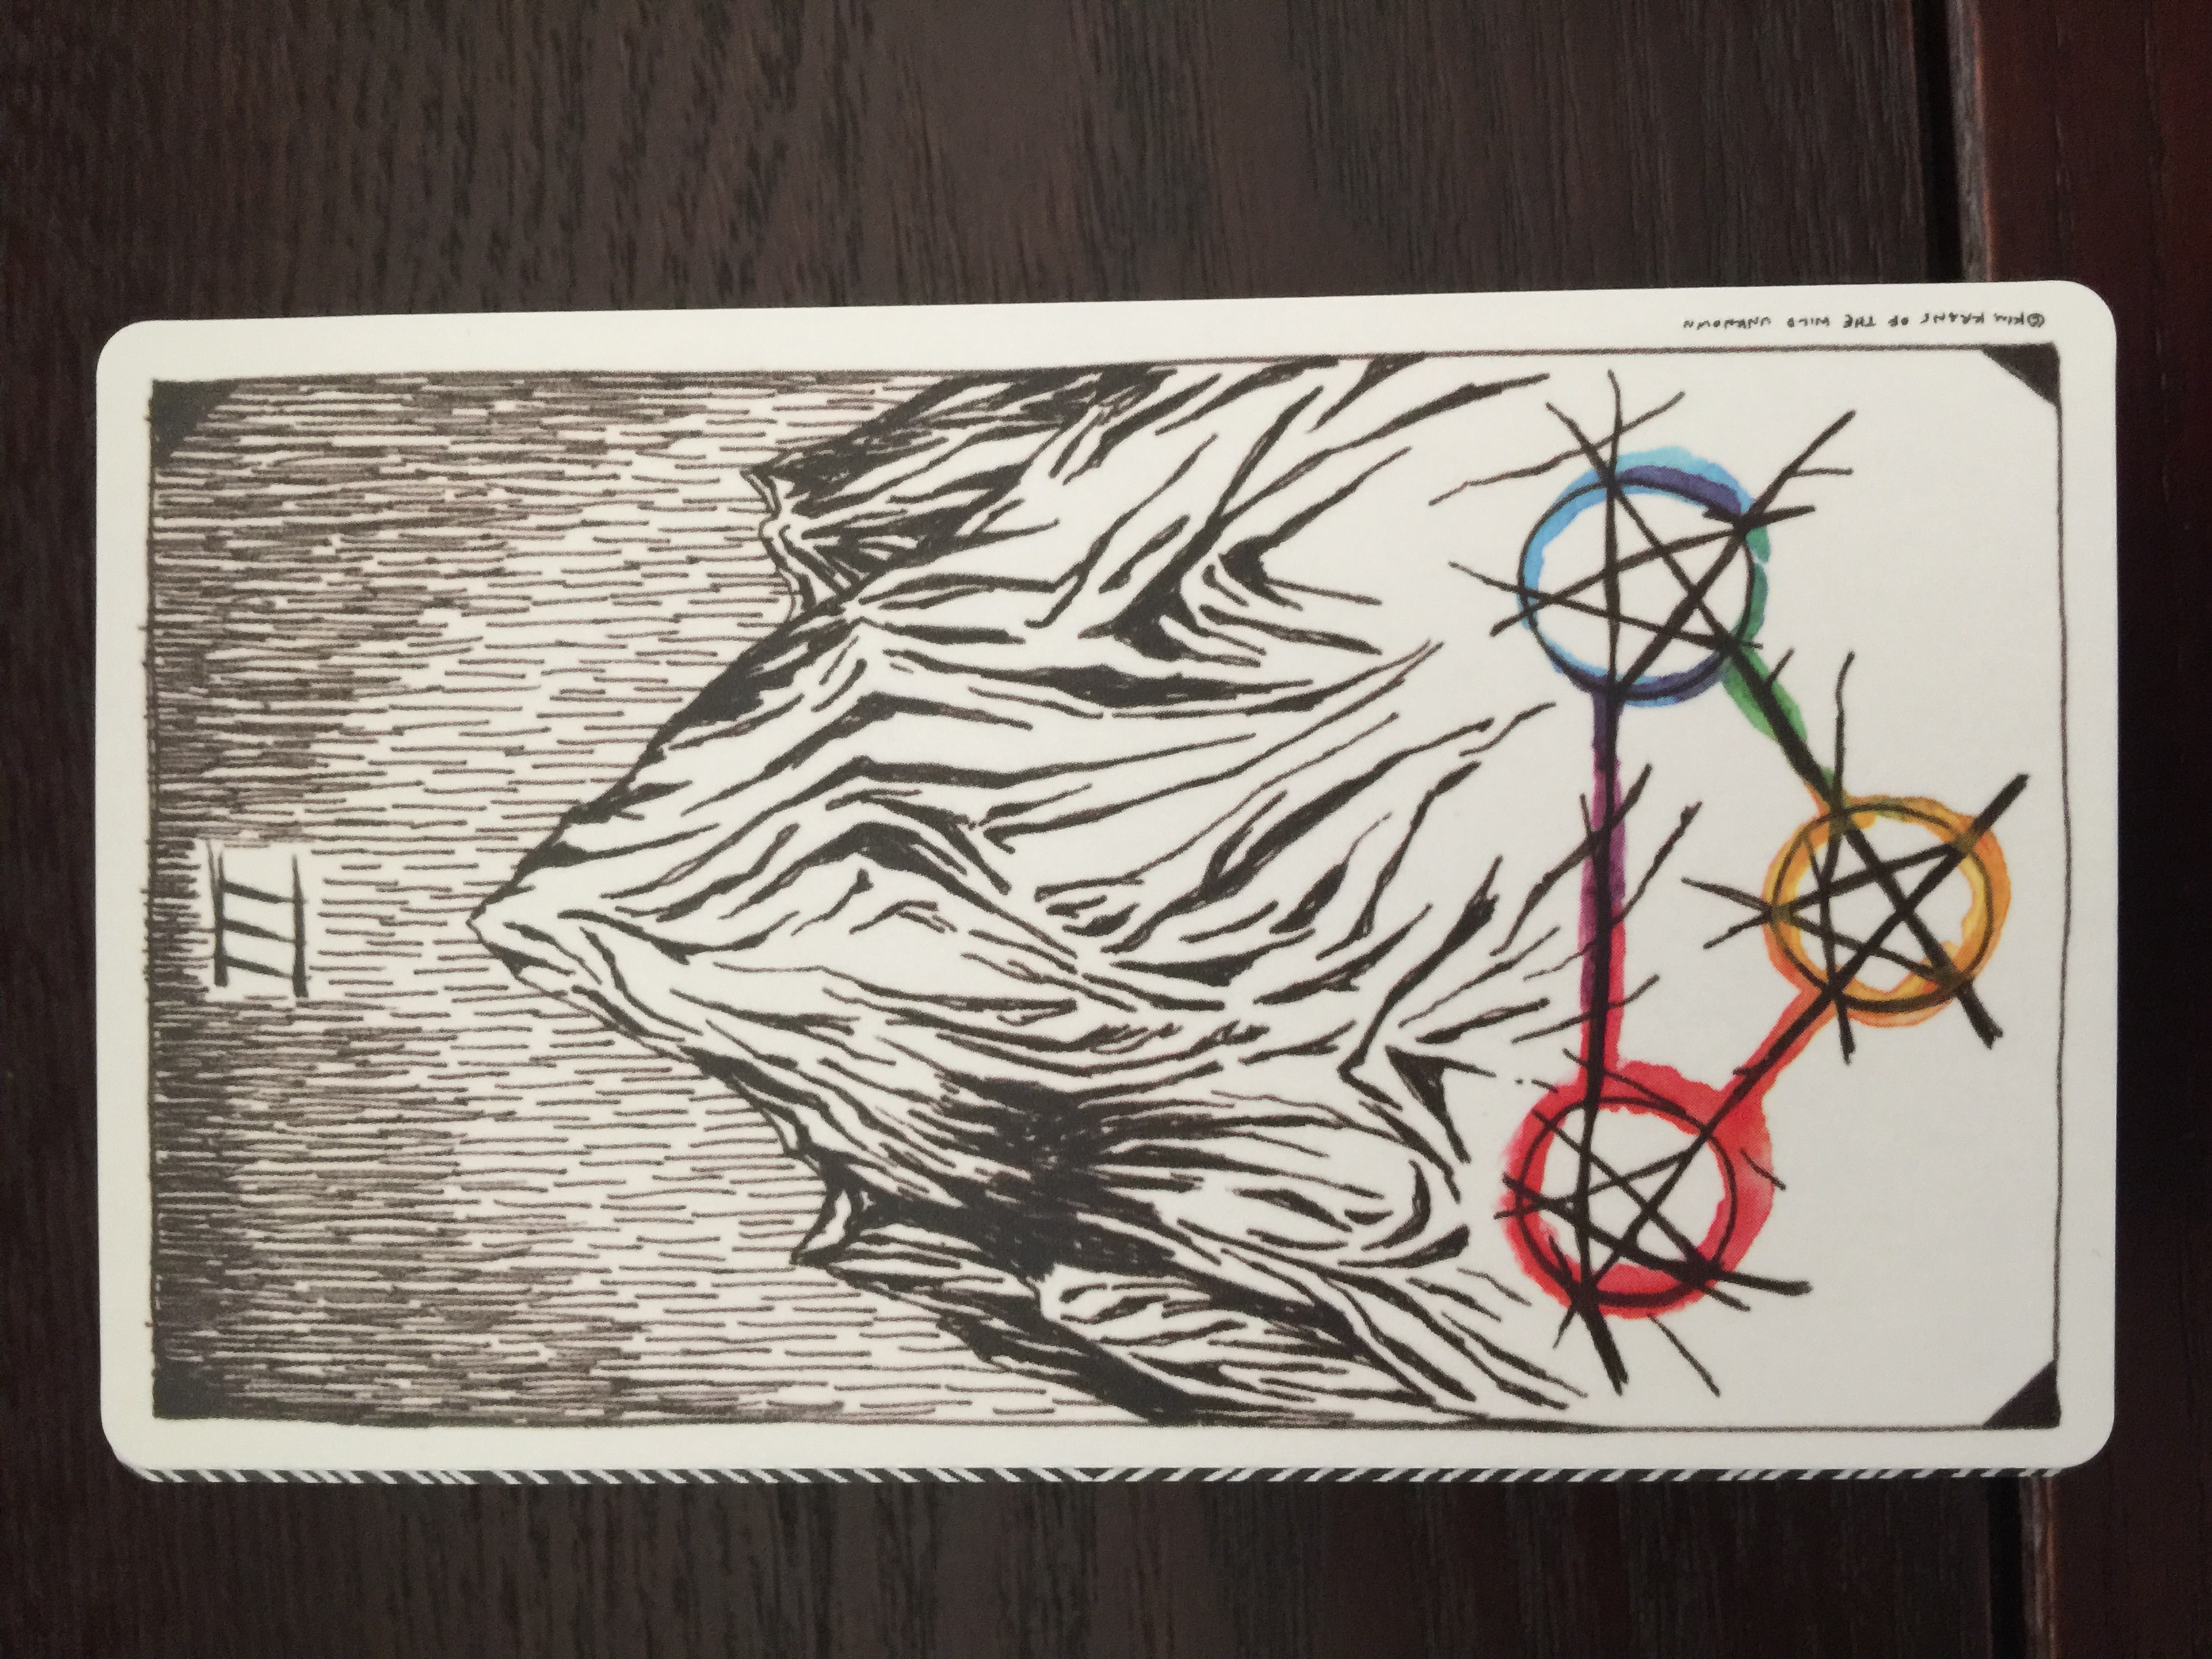 Deck used: The Wild Unknown Tarot